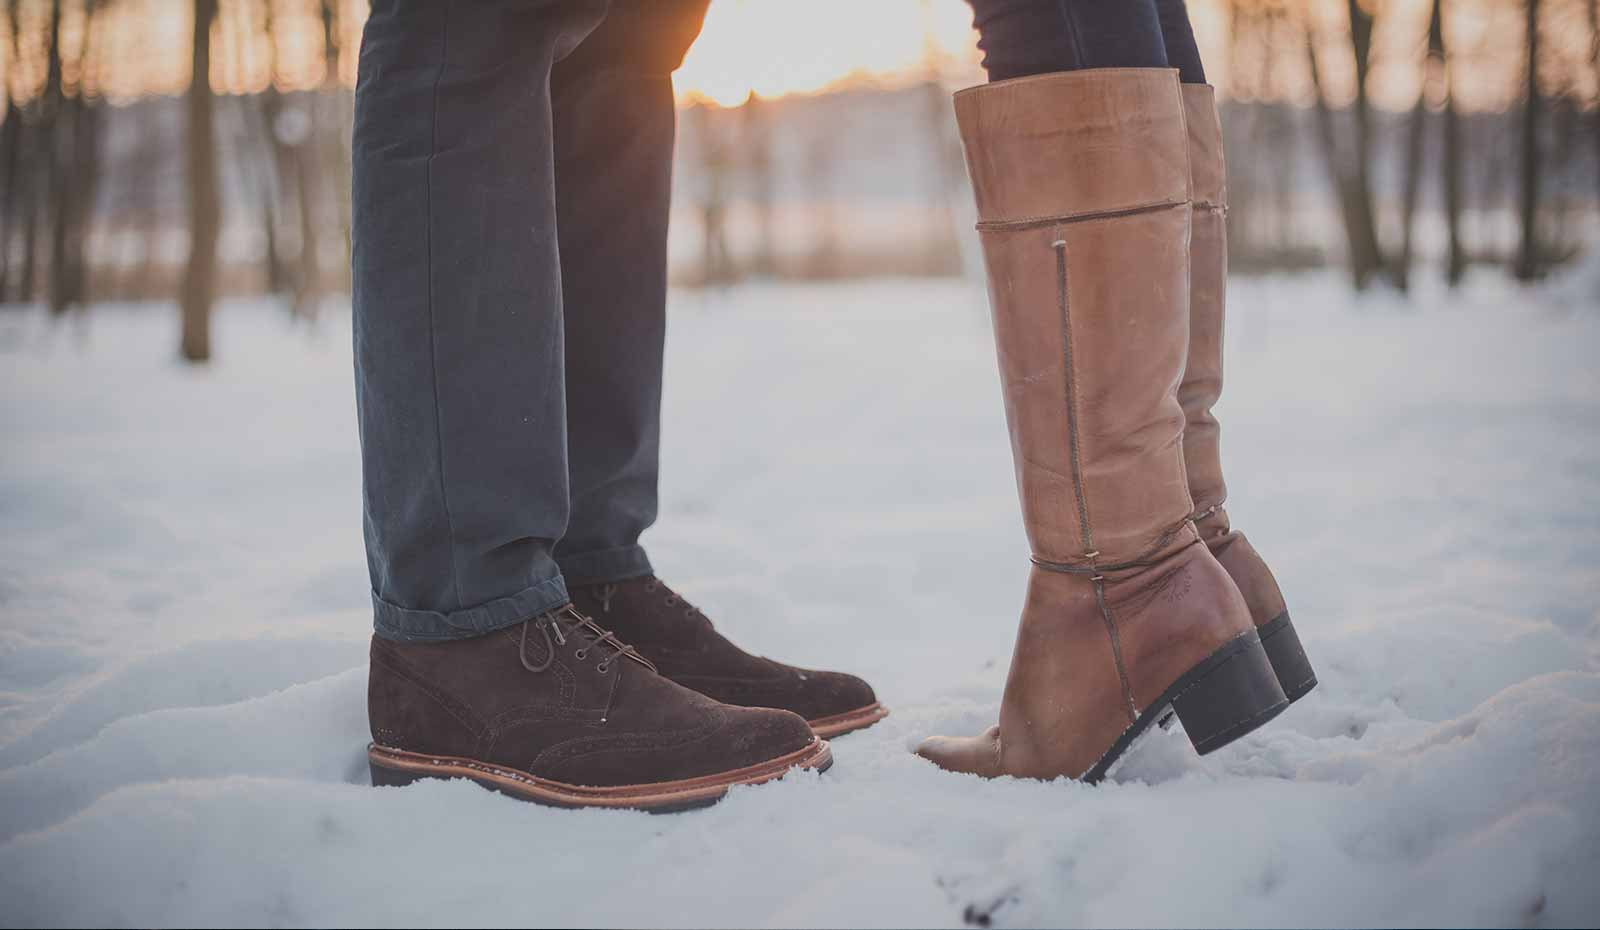 Top Popular Shoes Loved By People In Winter